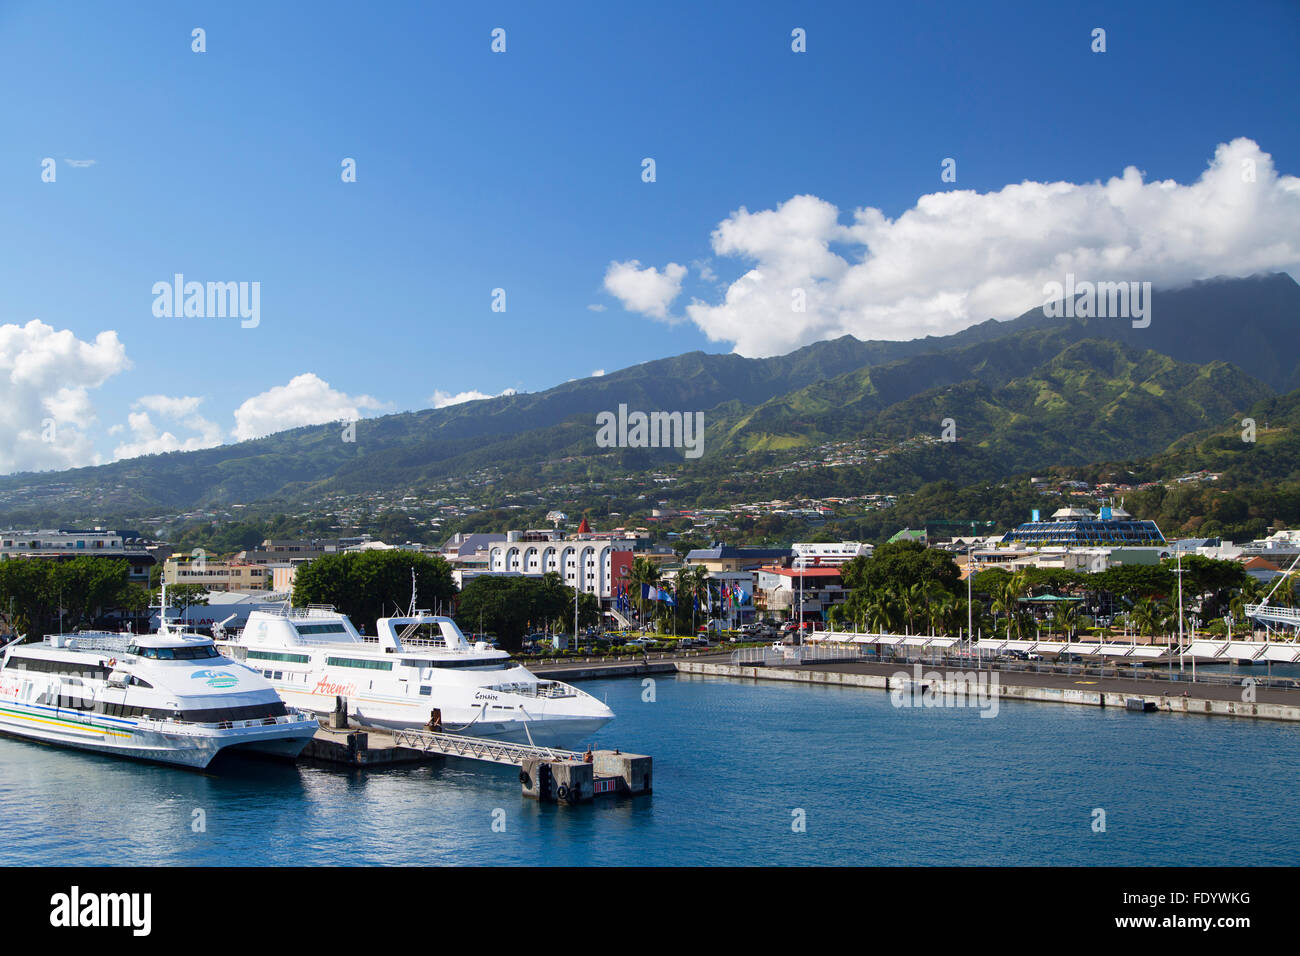 Boats in harbour, Pape'ete, Tahiti, French Polynesia Stock Photo